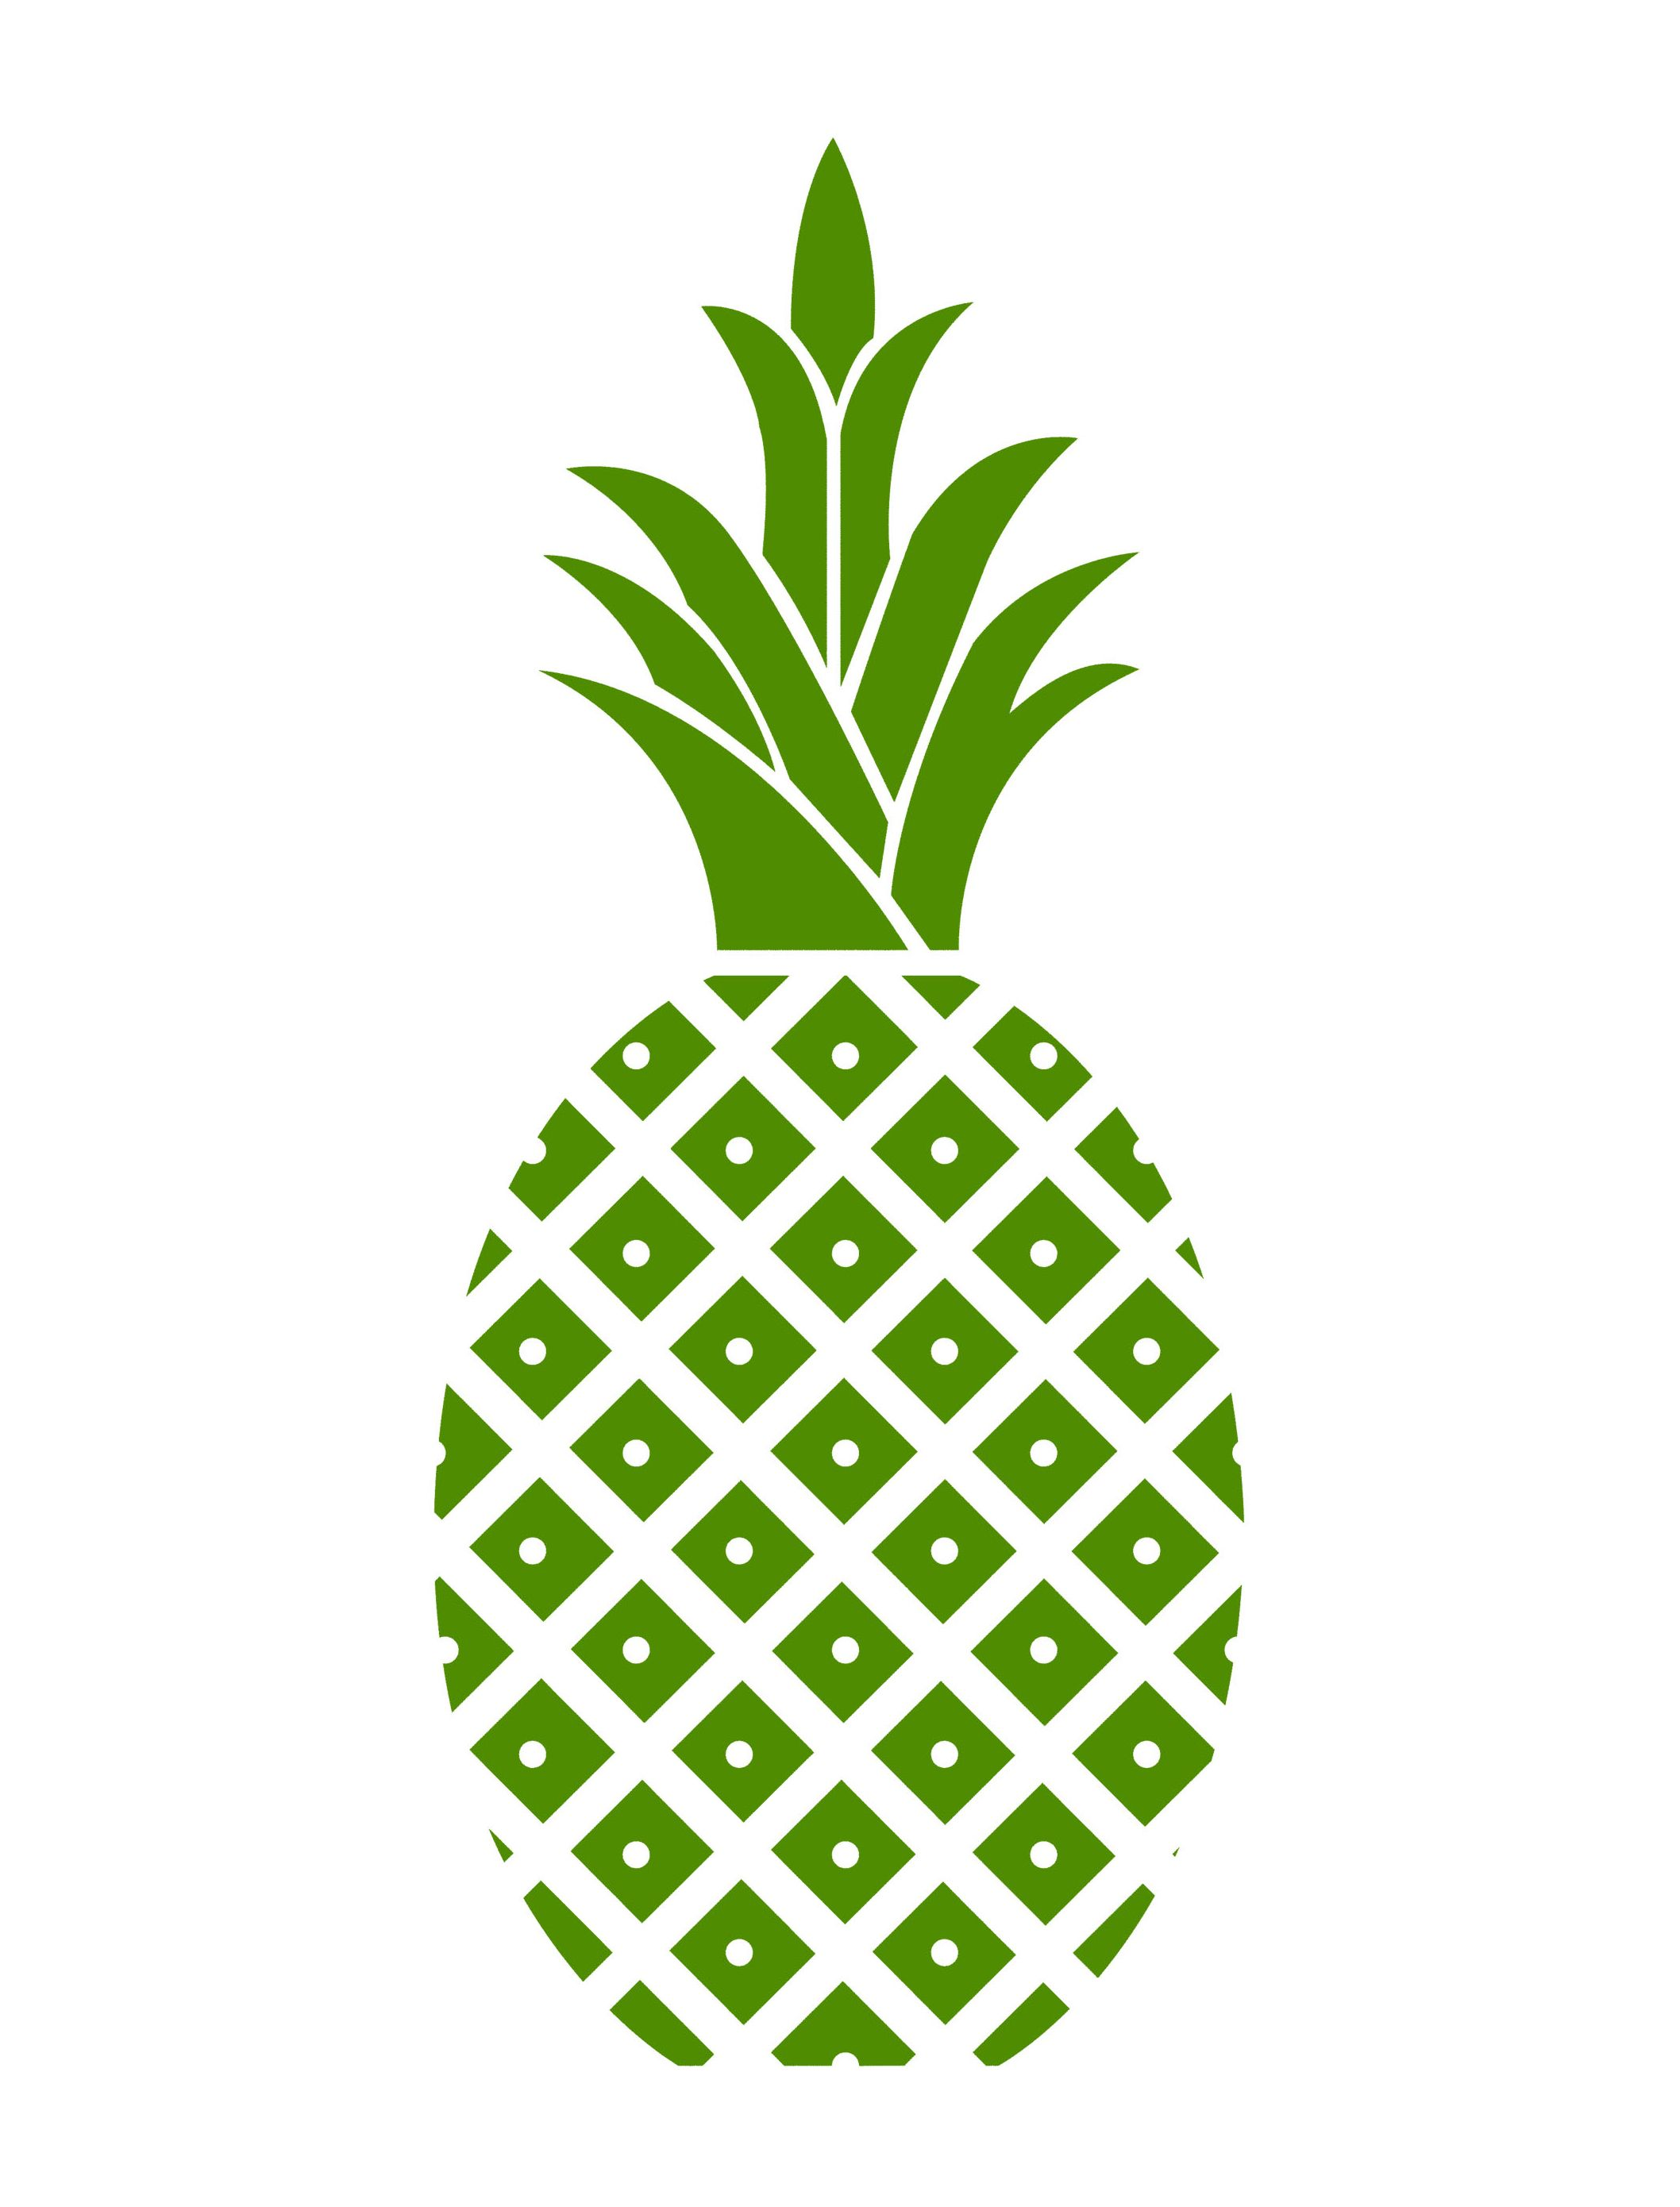 Pin by Elizabeth Todd on MY VISION BOARD Pineapple